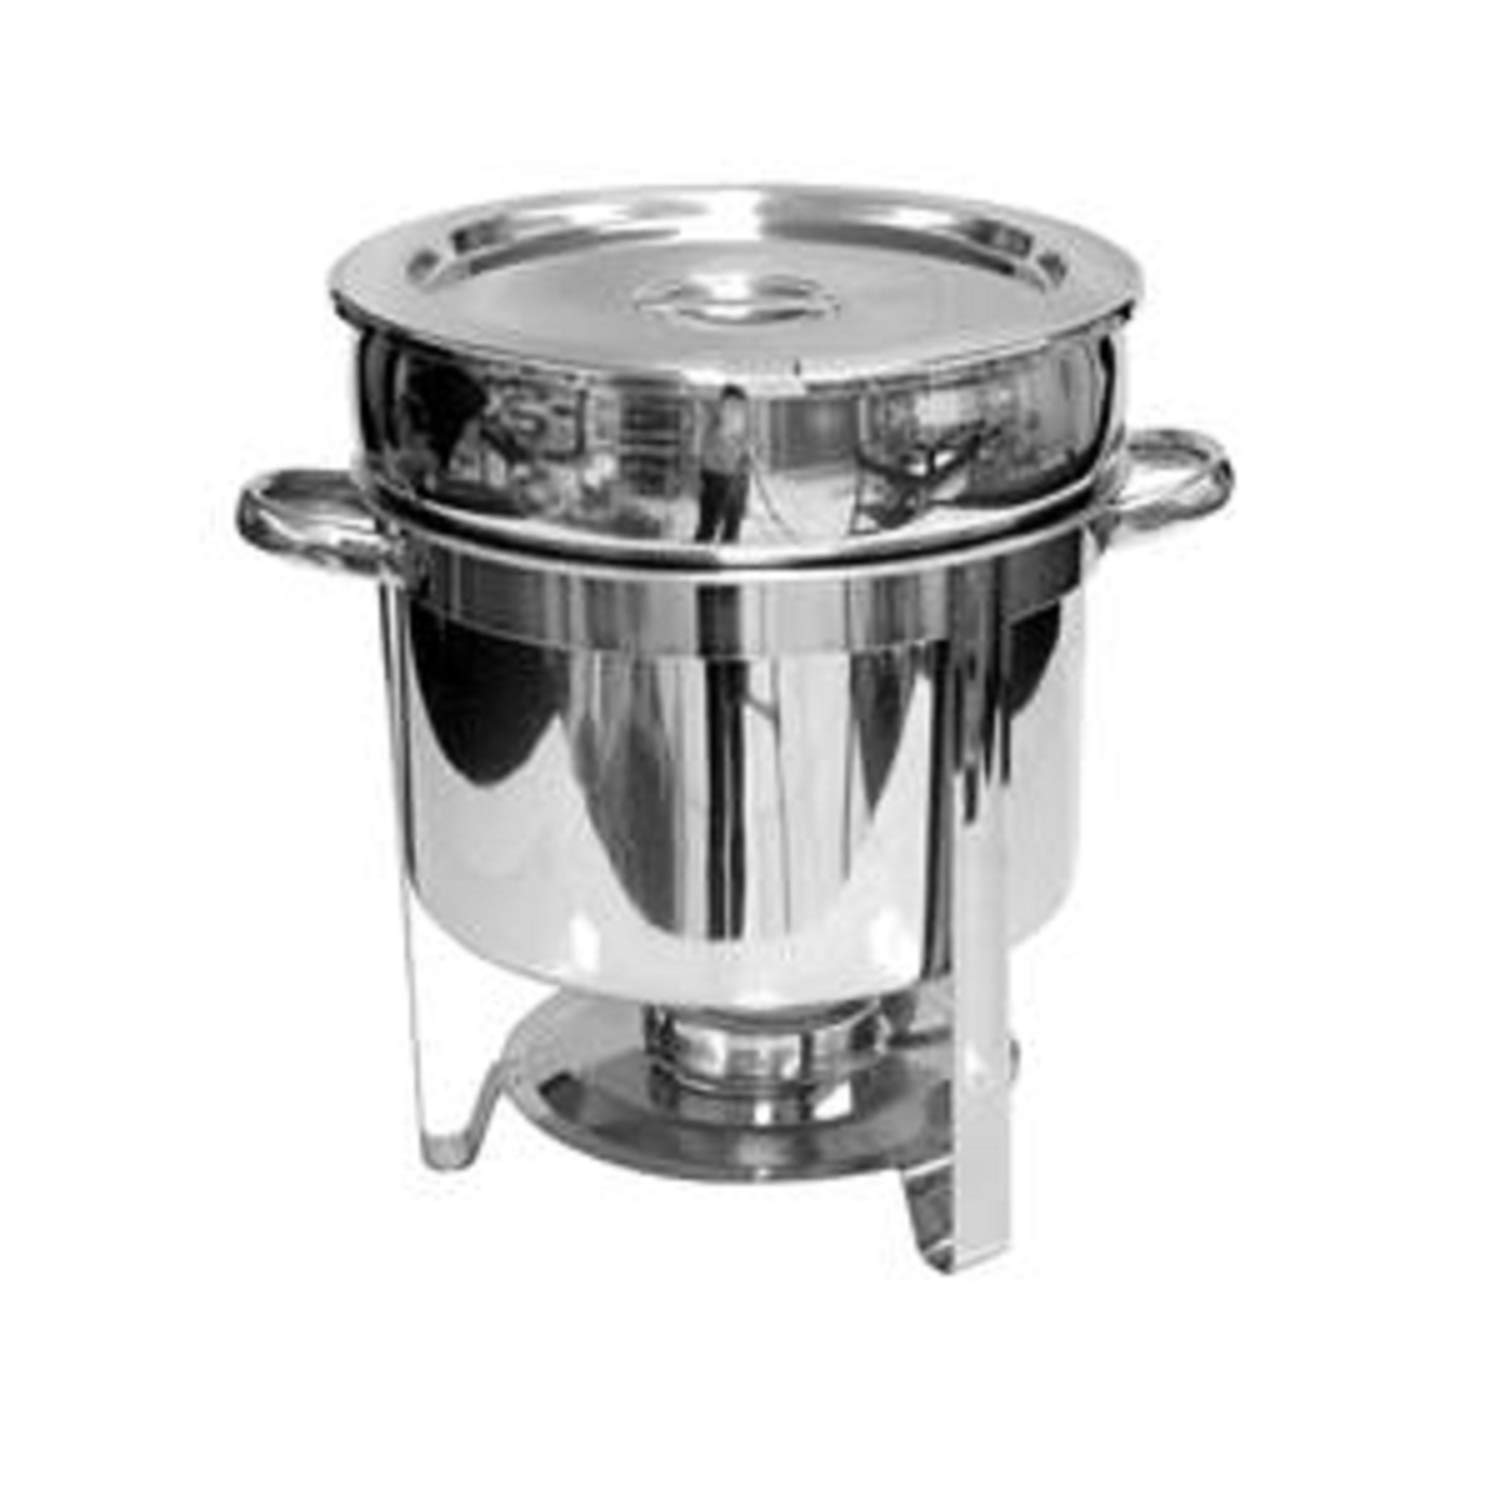 Tiger Chef 11 Qt. Soup Chafer Stainless Steel Chafing Dishes Marmite Chafer Hot Water Soup Food Warmer Chafing Dish Buffet Set Soup Warmers For Parties Commercial Grade Soup Kettle Soup Chafing Dish